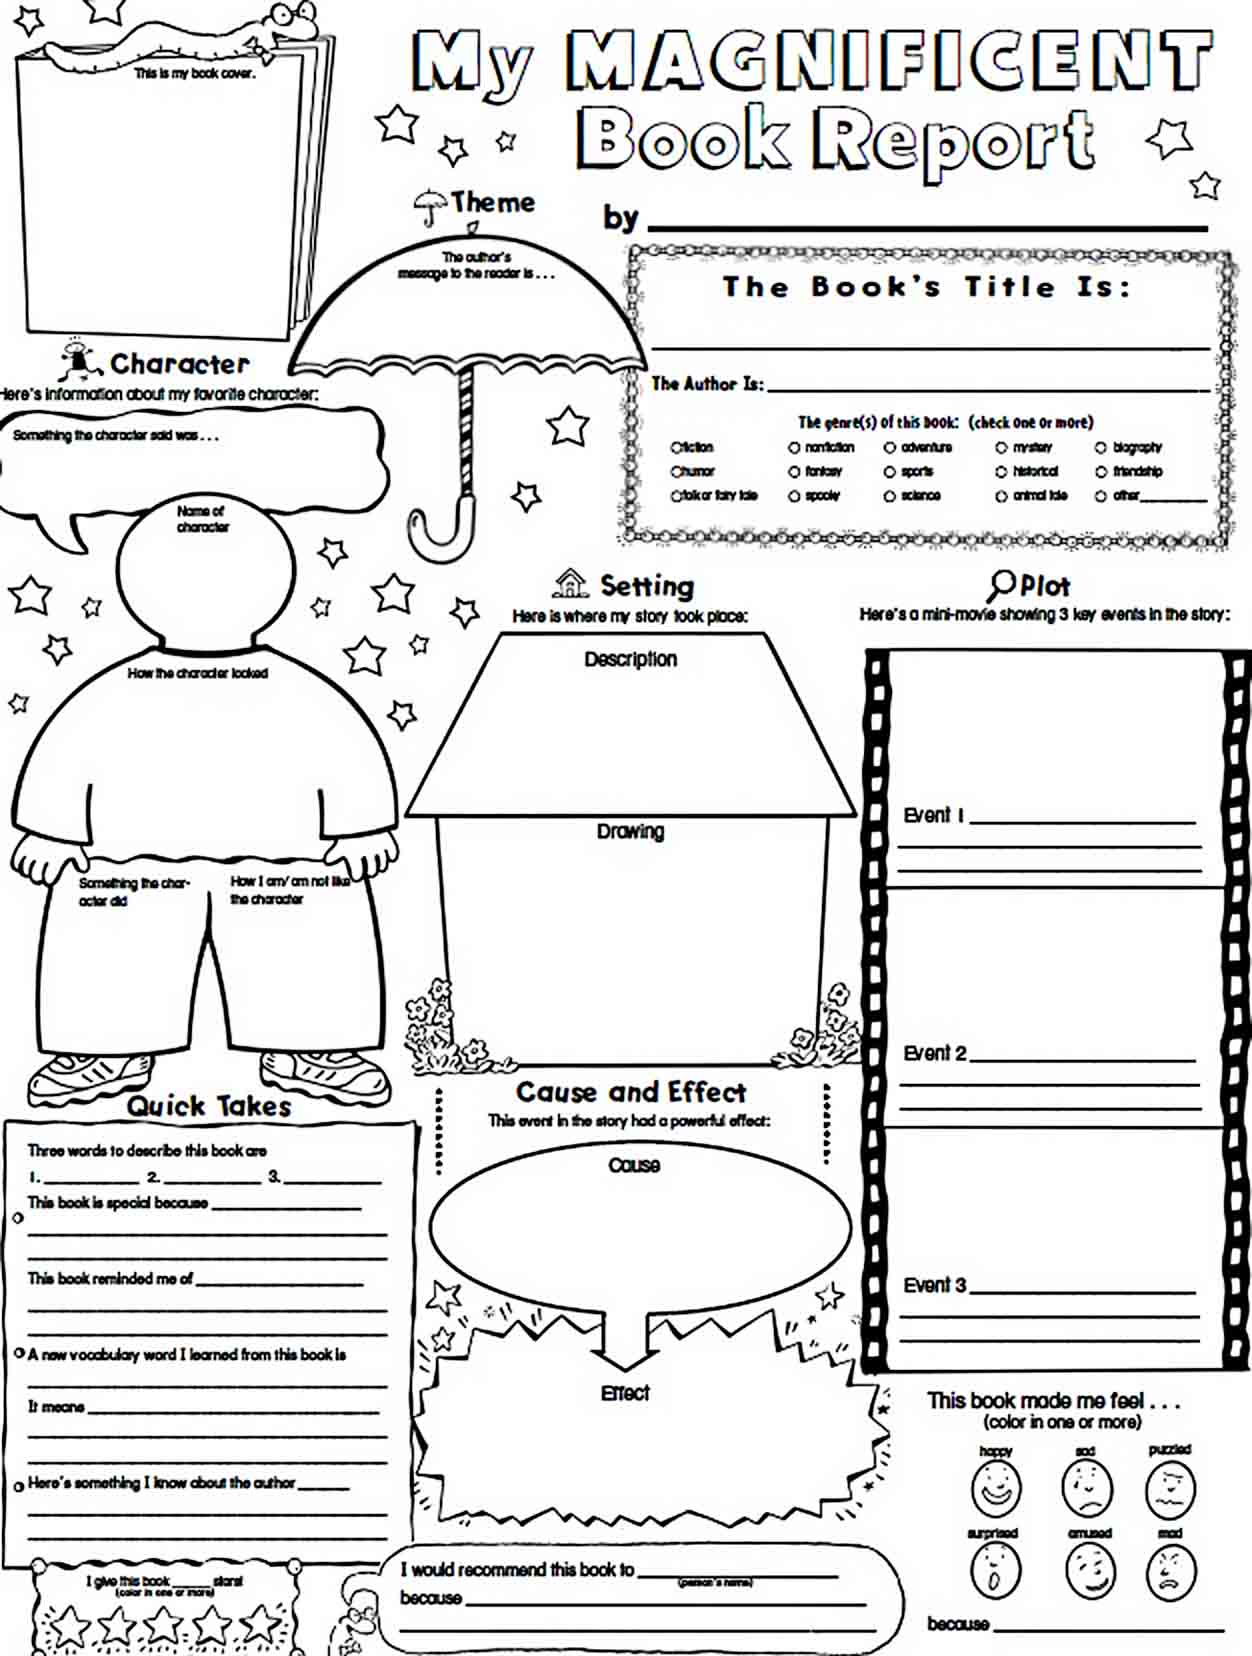 Templates Magnificent Book Report Sample Download